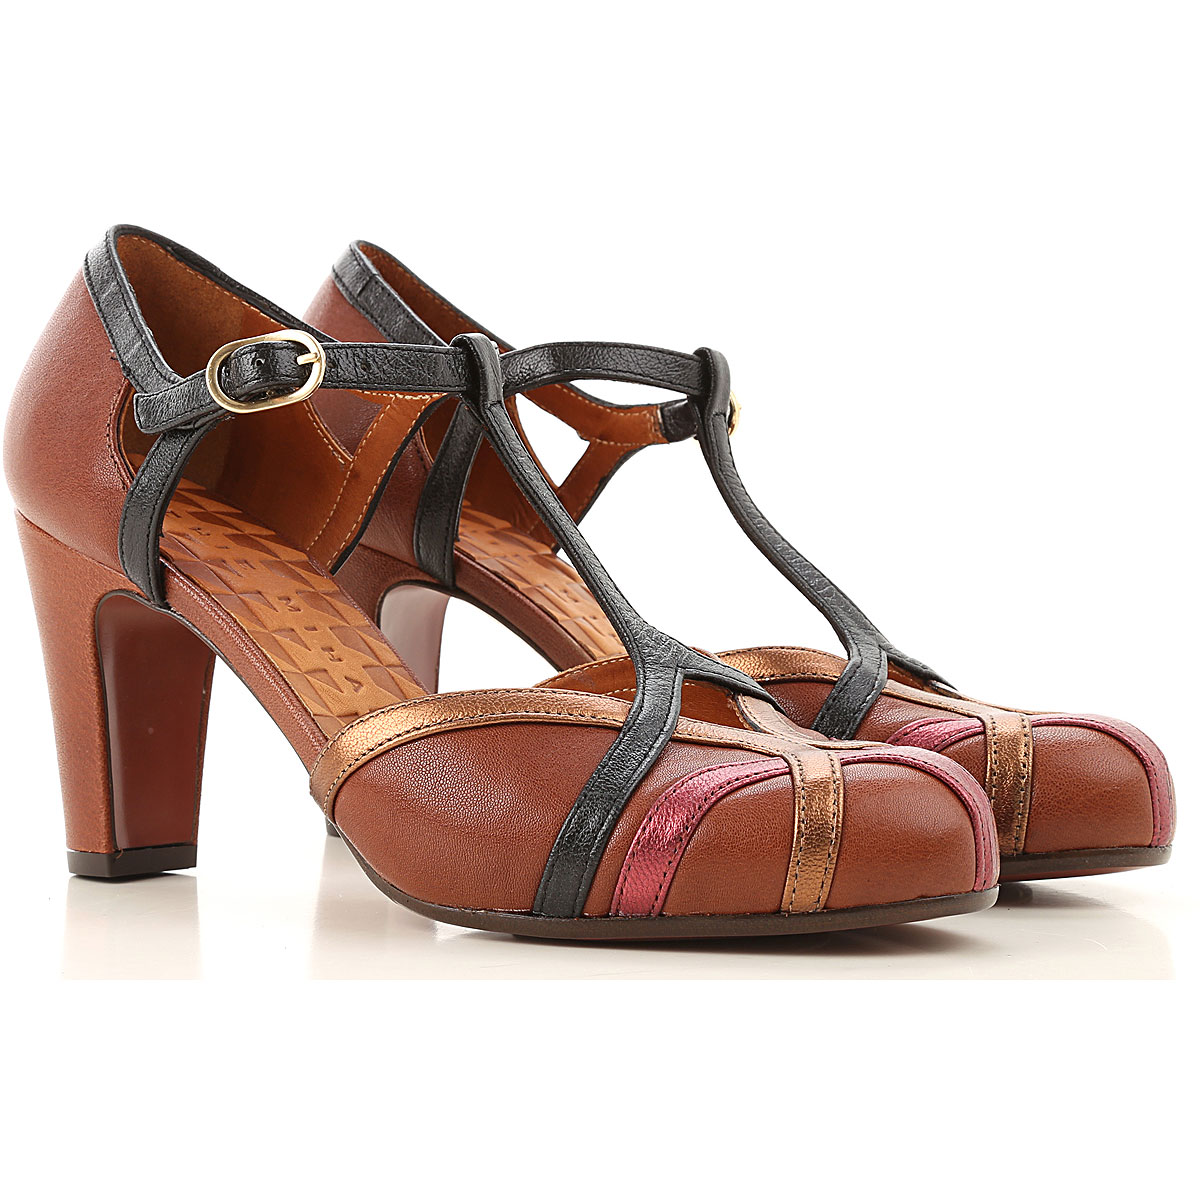 Chie Mihara Womens Shoes On Sale, Brown, Leather, 2019, 7 8 9